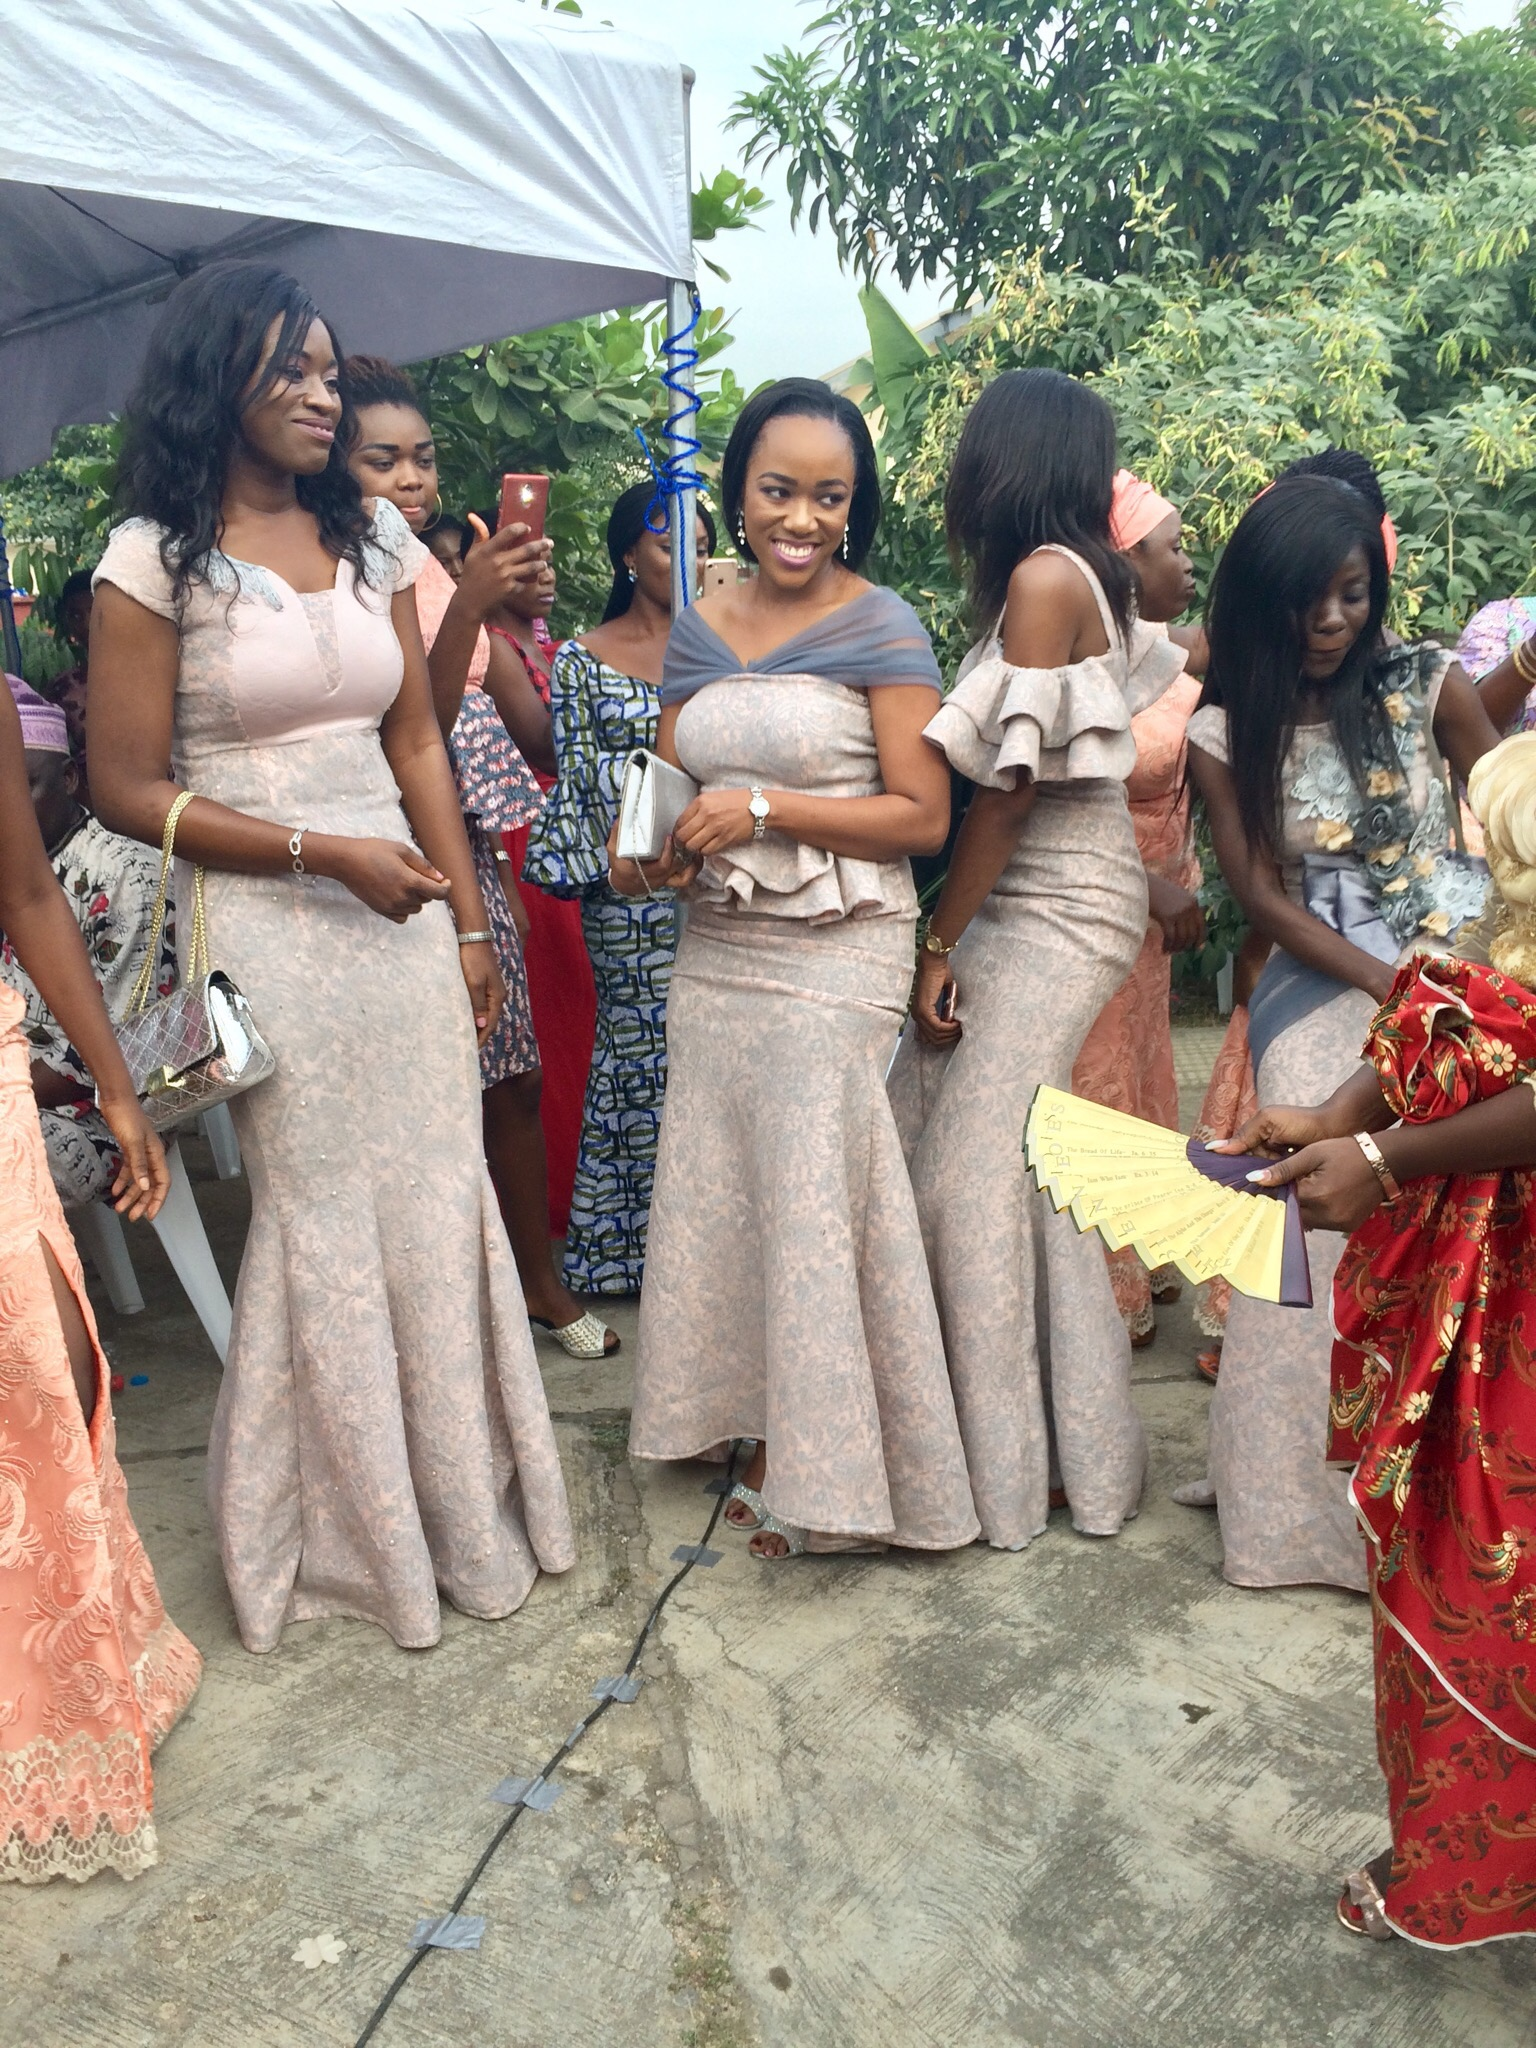 When the bride's friends are happy for her